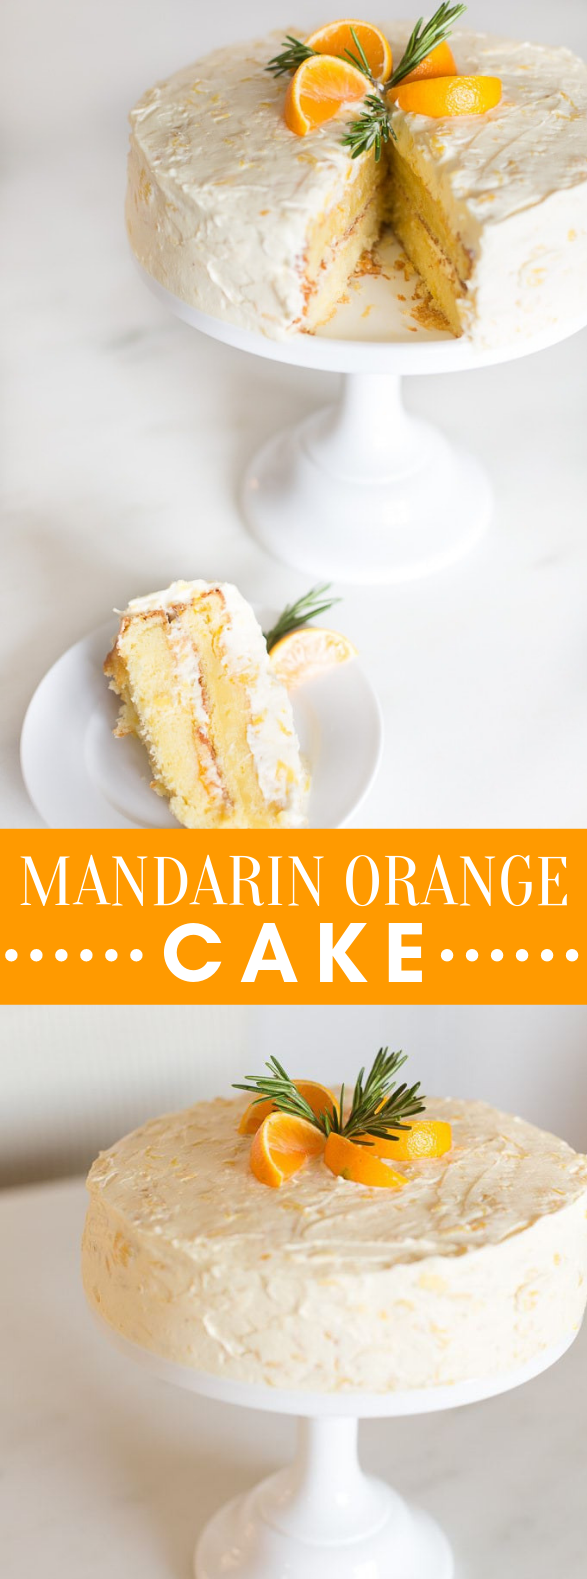 MANDARIN ORANGE CAKE #desserts #baking